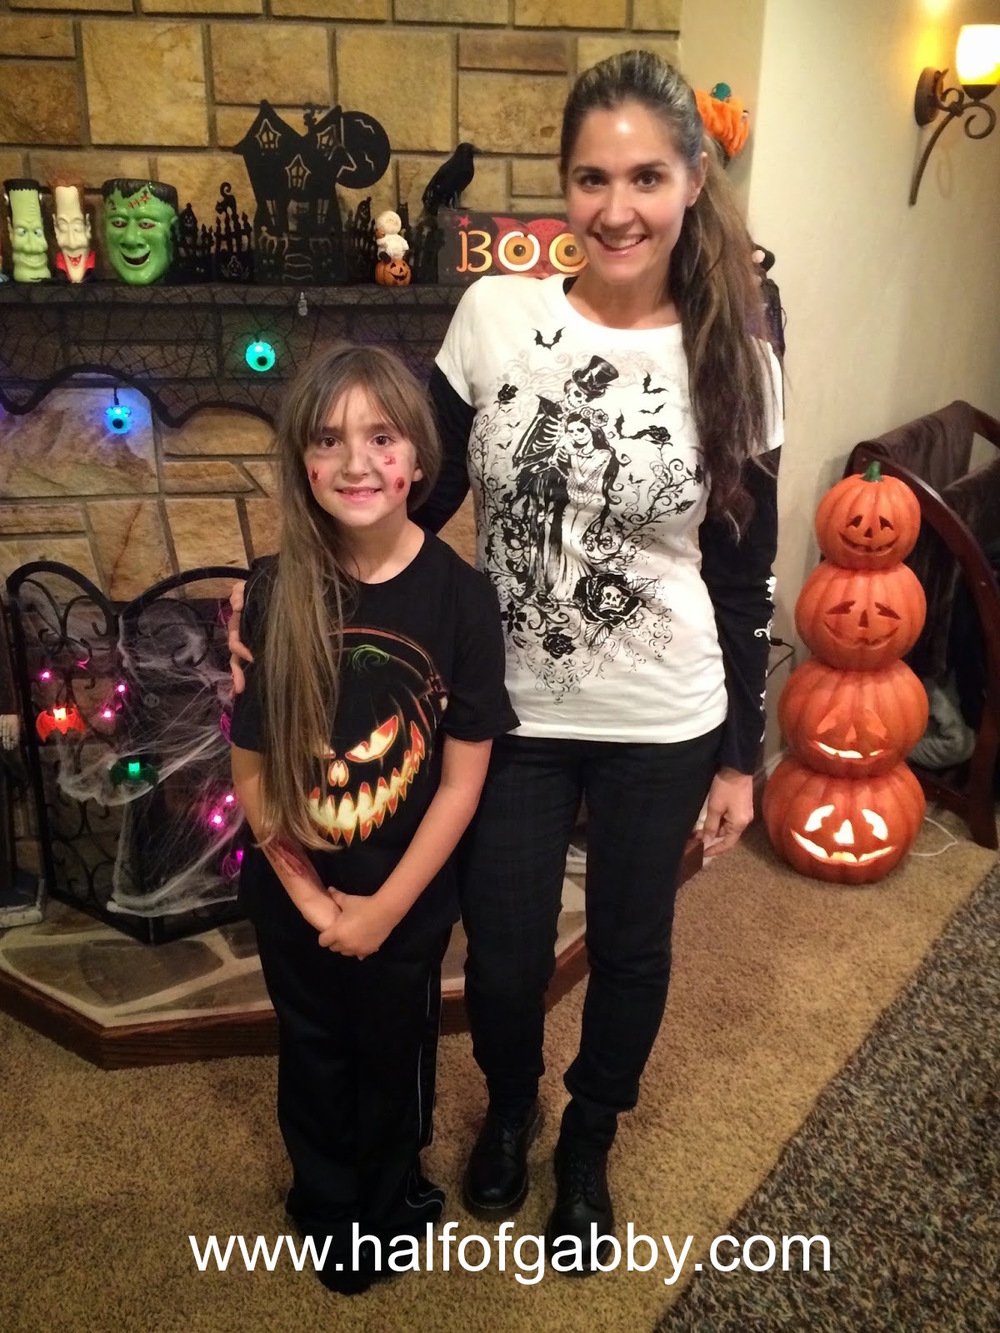 This is my youngest, Jossy and I. She is still in her zombie makeup after the kid's Halloween party.